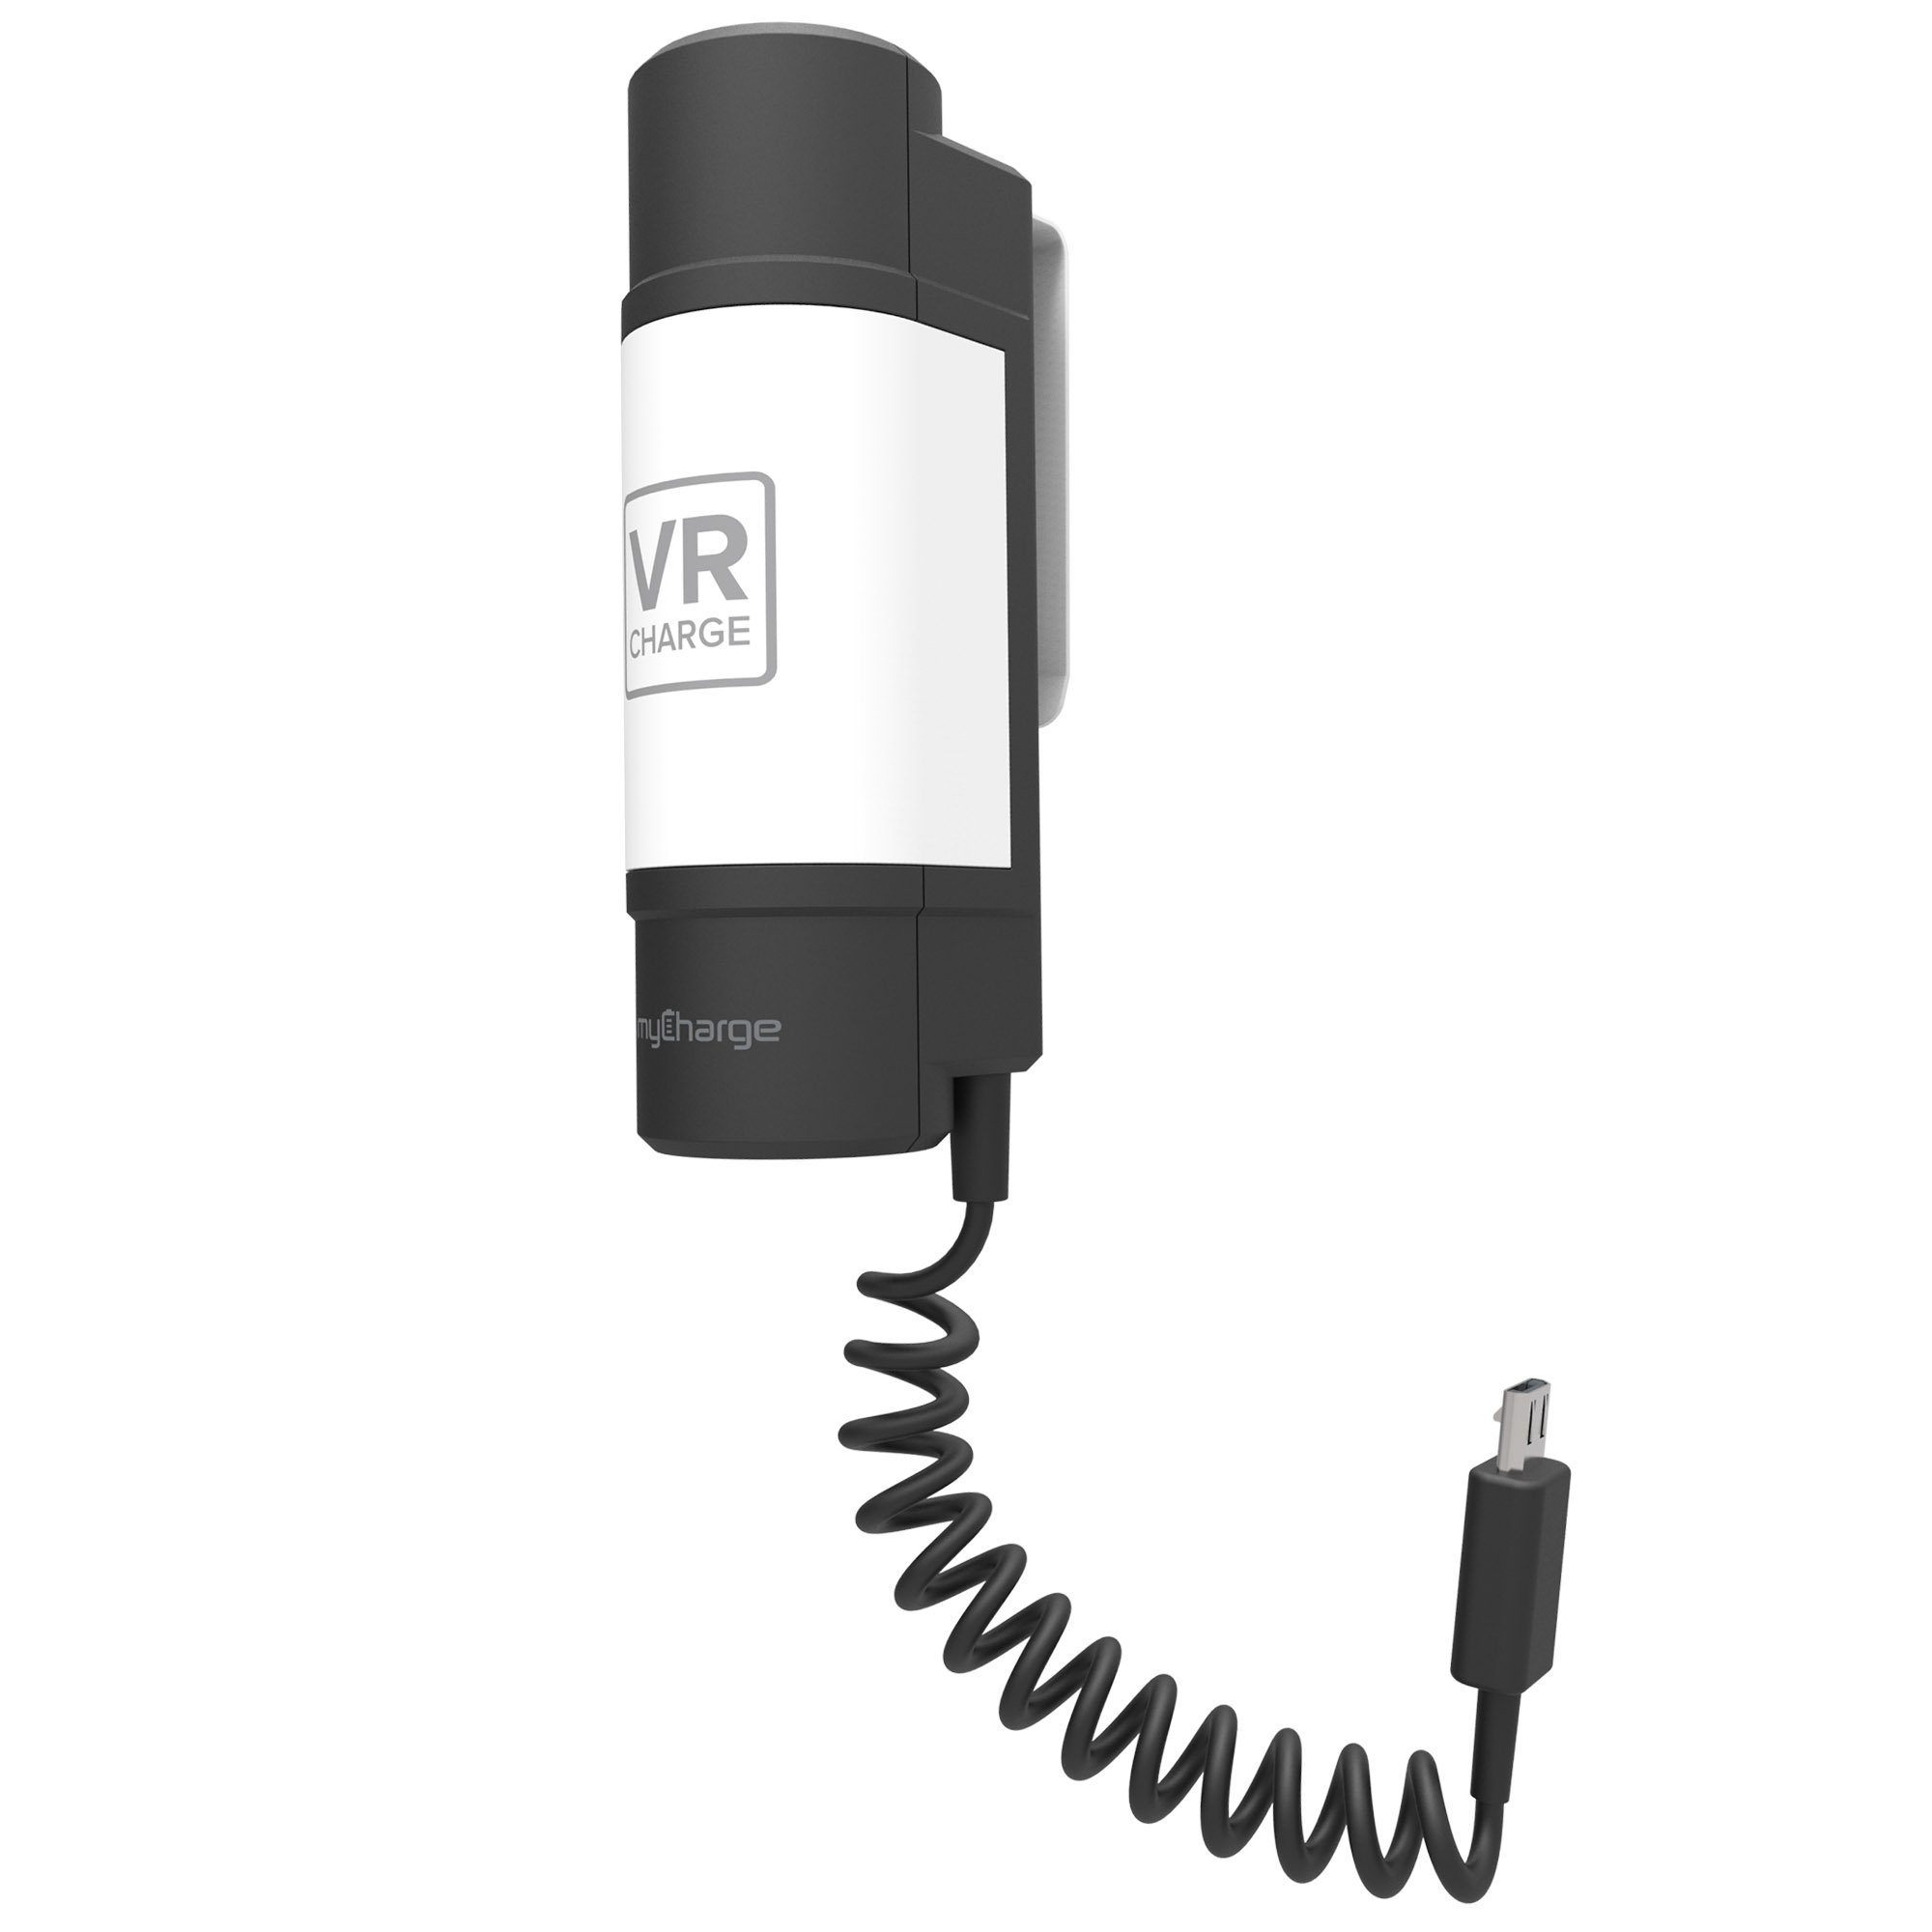 myCharge VRCharge Portable Charger for Samsung Gear VR - White/Black by myCharge (Image #3)